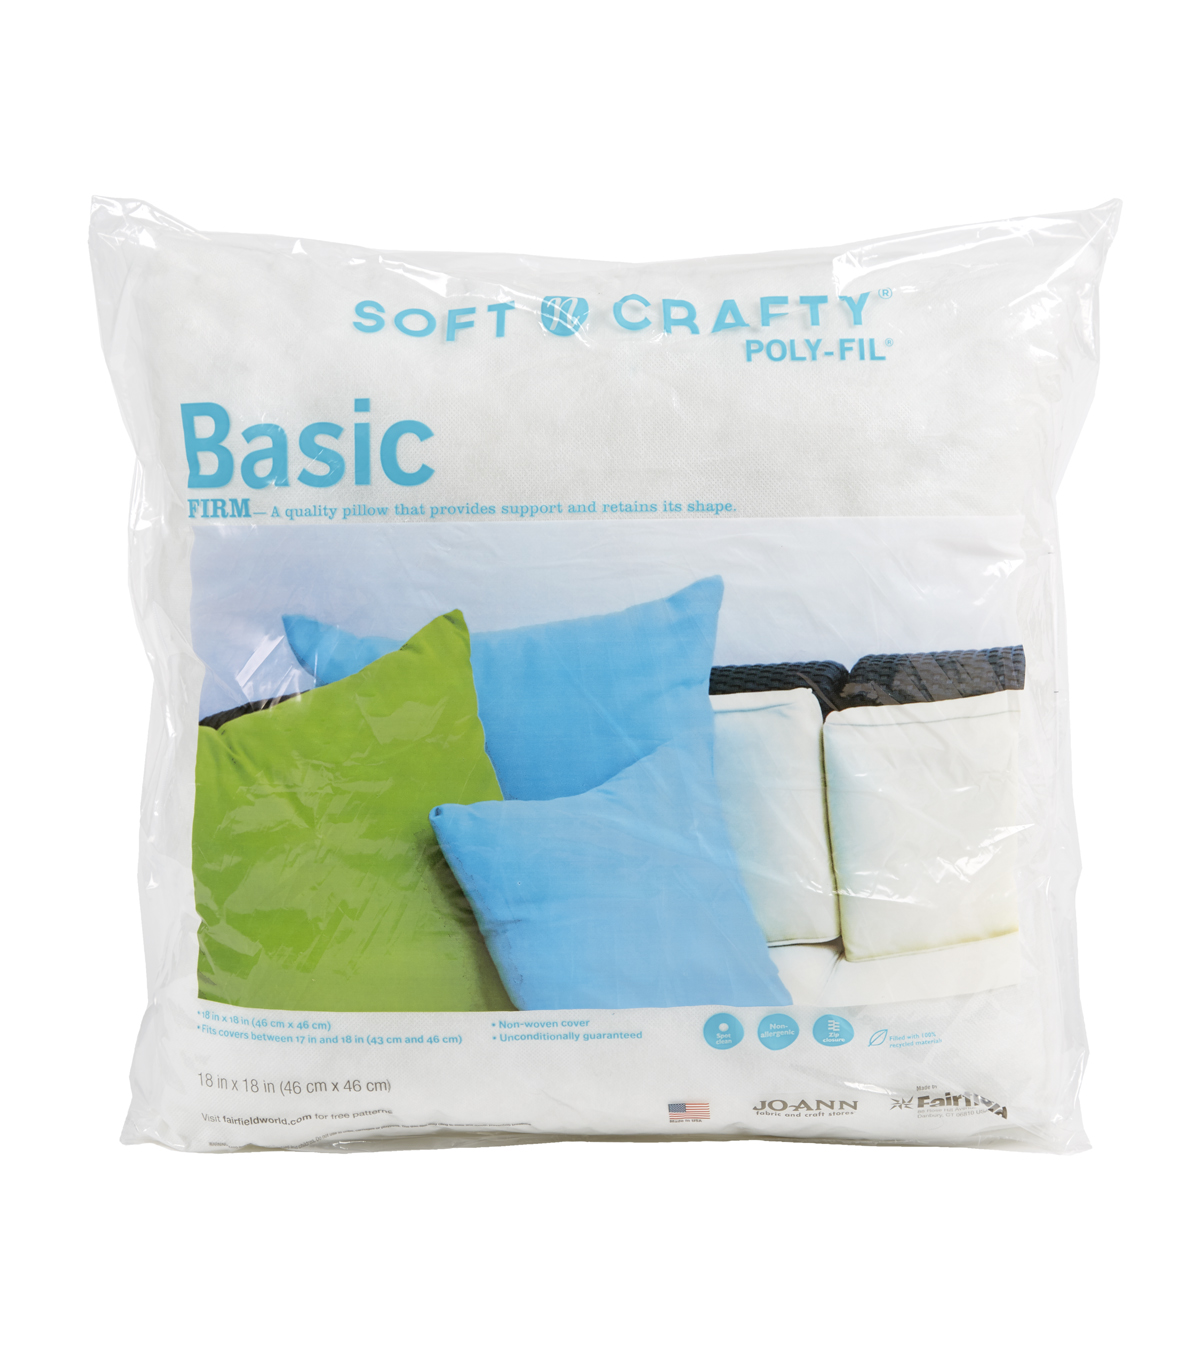 Soft N Crafty Basic 18\u0022 x 18\u0022 Pillow